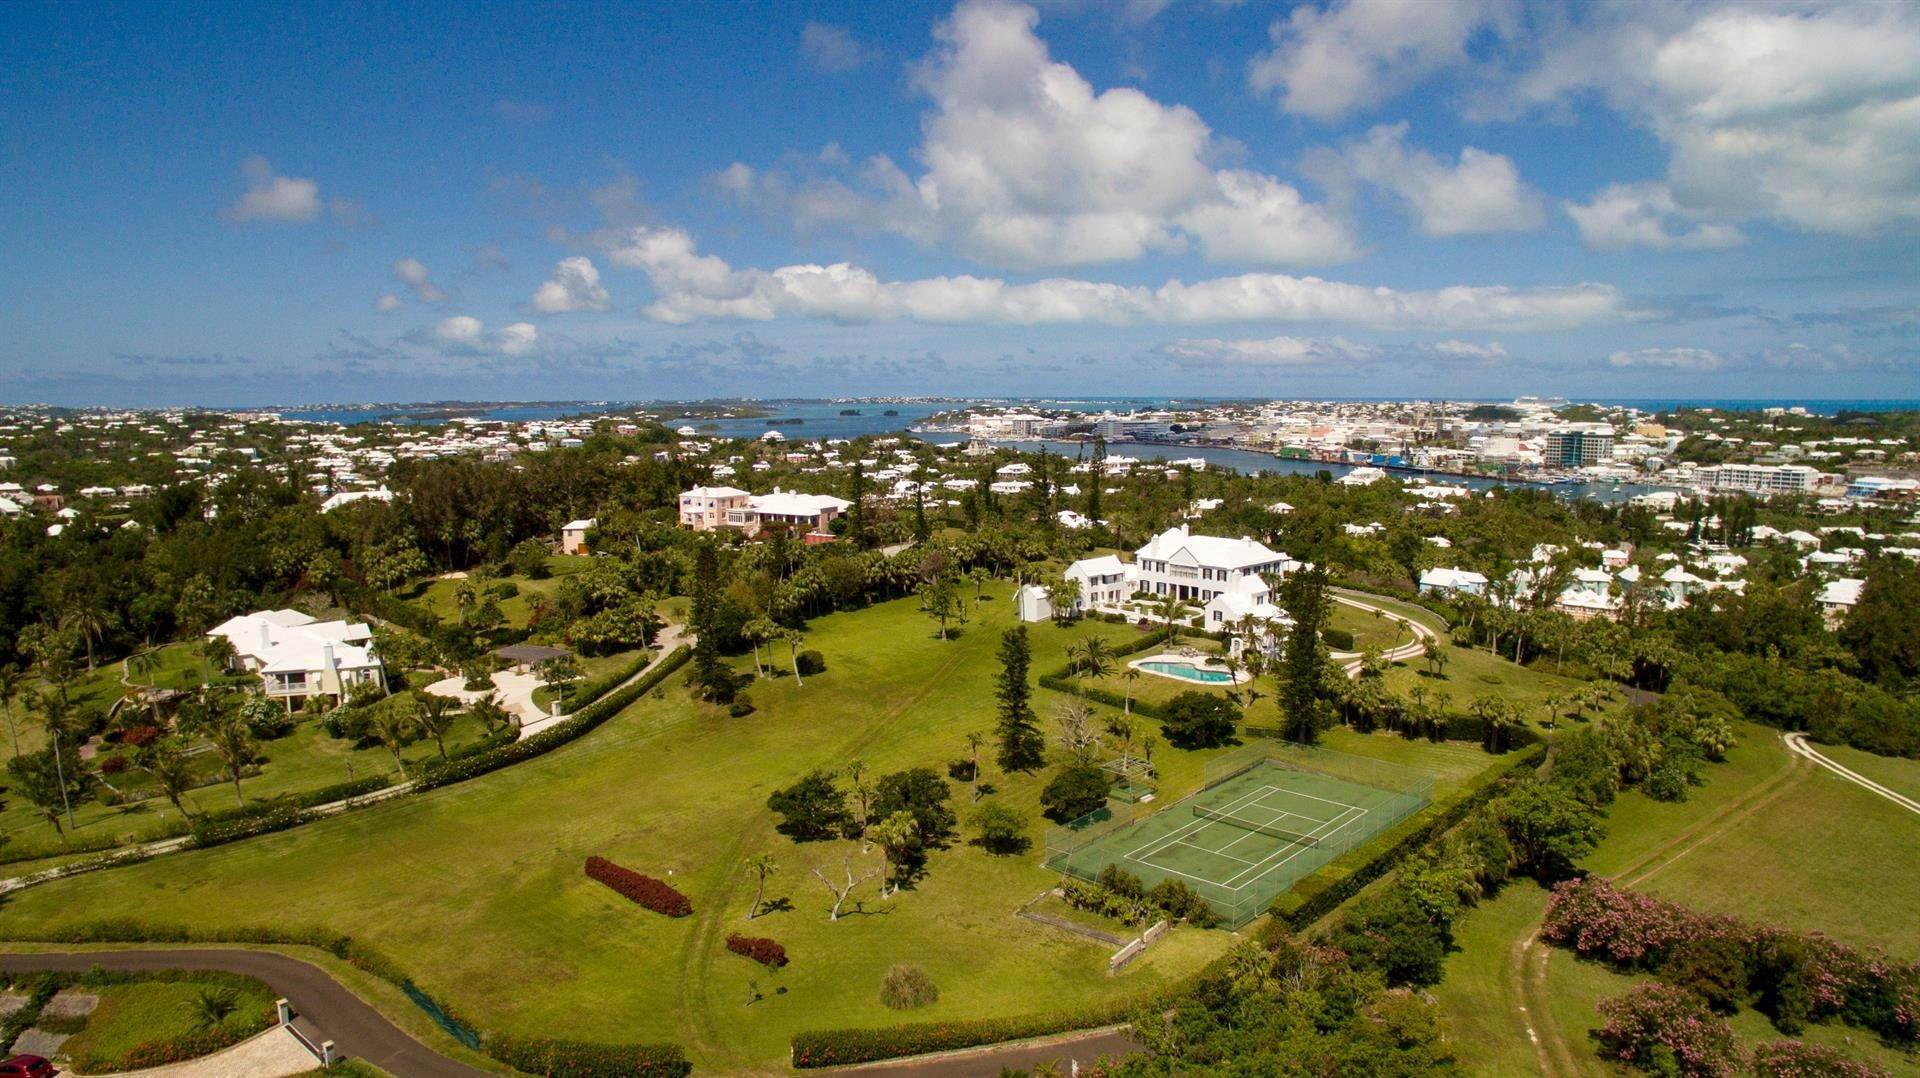 3. Propriedade para Venda às Bellevue Estate At Grape Bay Beach Bellevue Estate At Grape Bay Beach, 6 Bellevue Drive,Bermuda – Sinclair Realty